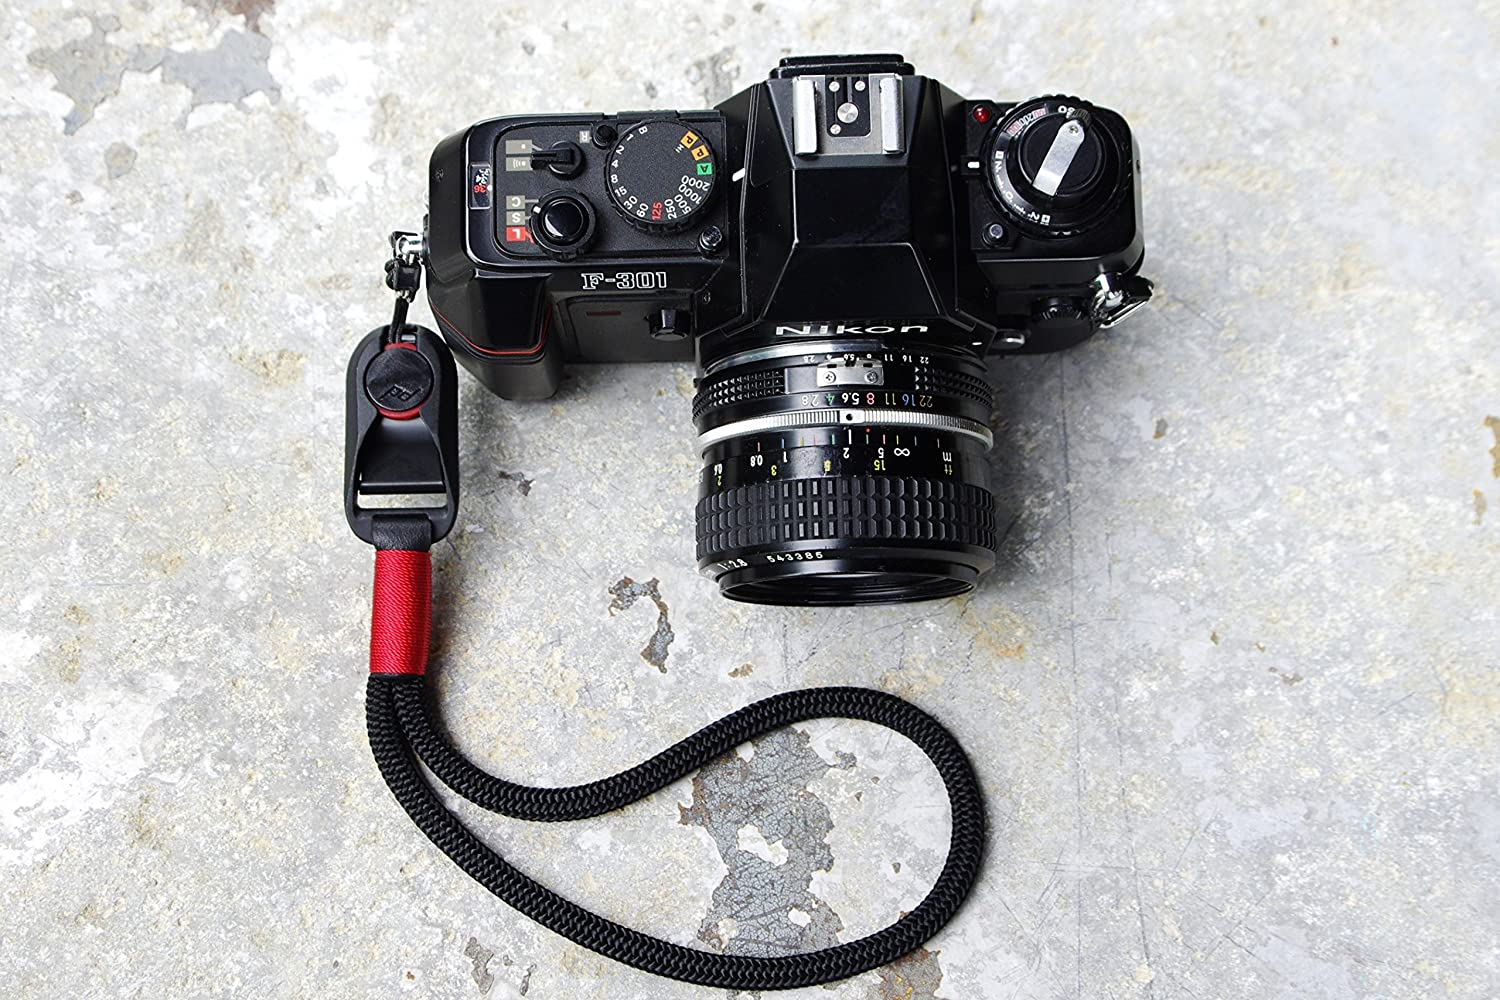 TorMake Hand strap wrist strap from rope and Anchor Links Peak Design decorate leather and color thread for all Film,Digital,Mirrorless Camera Strap